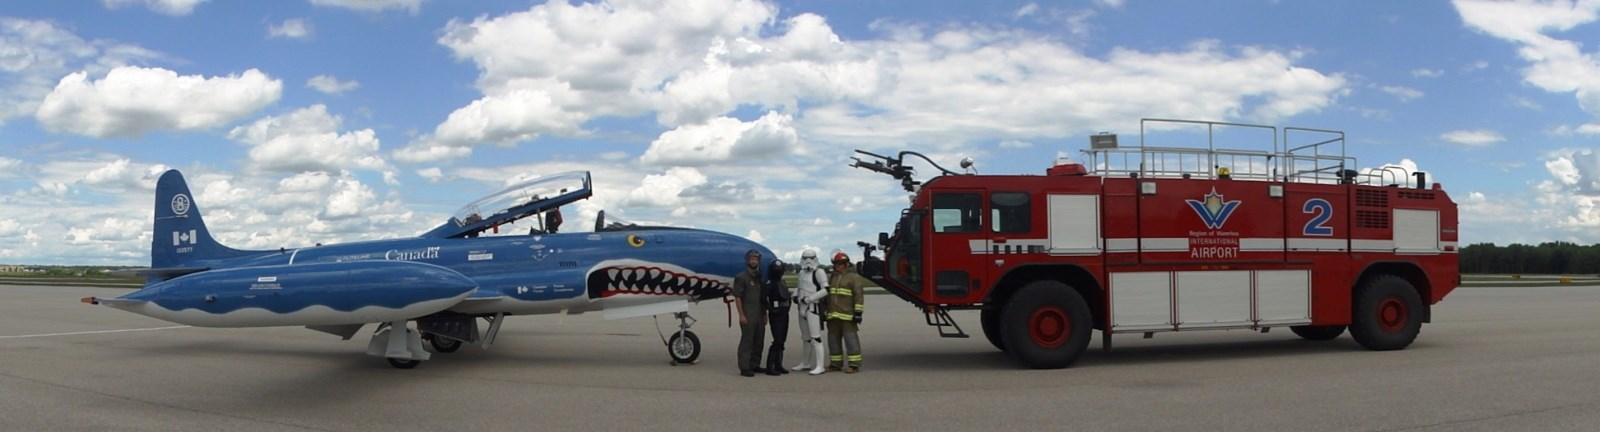 Image of fire truck and Mako Shark with operators and 501st members